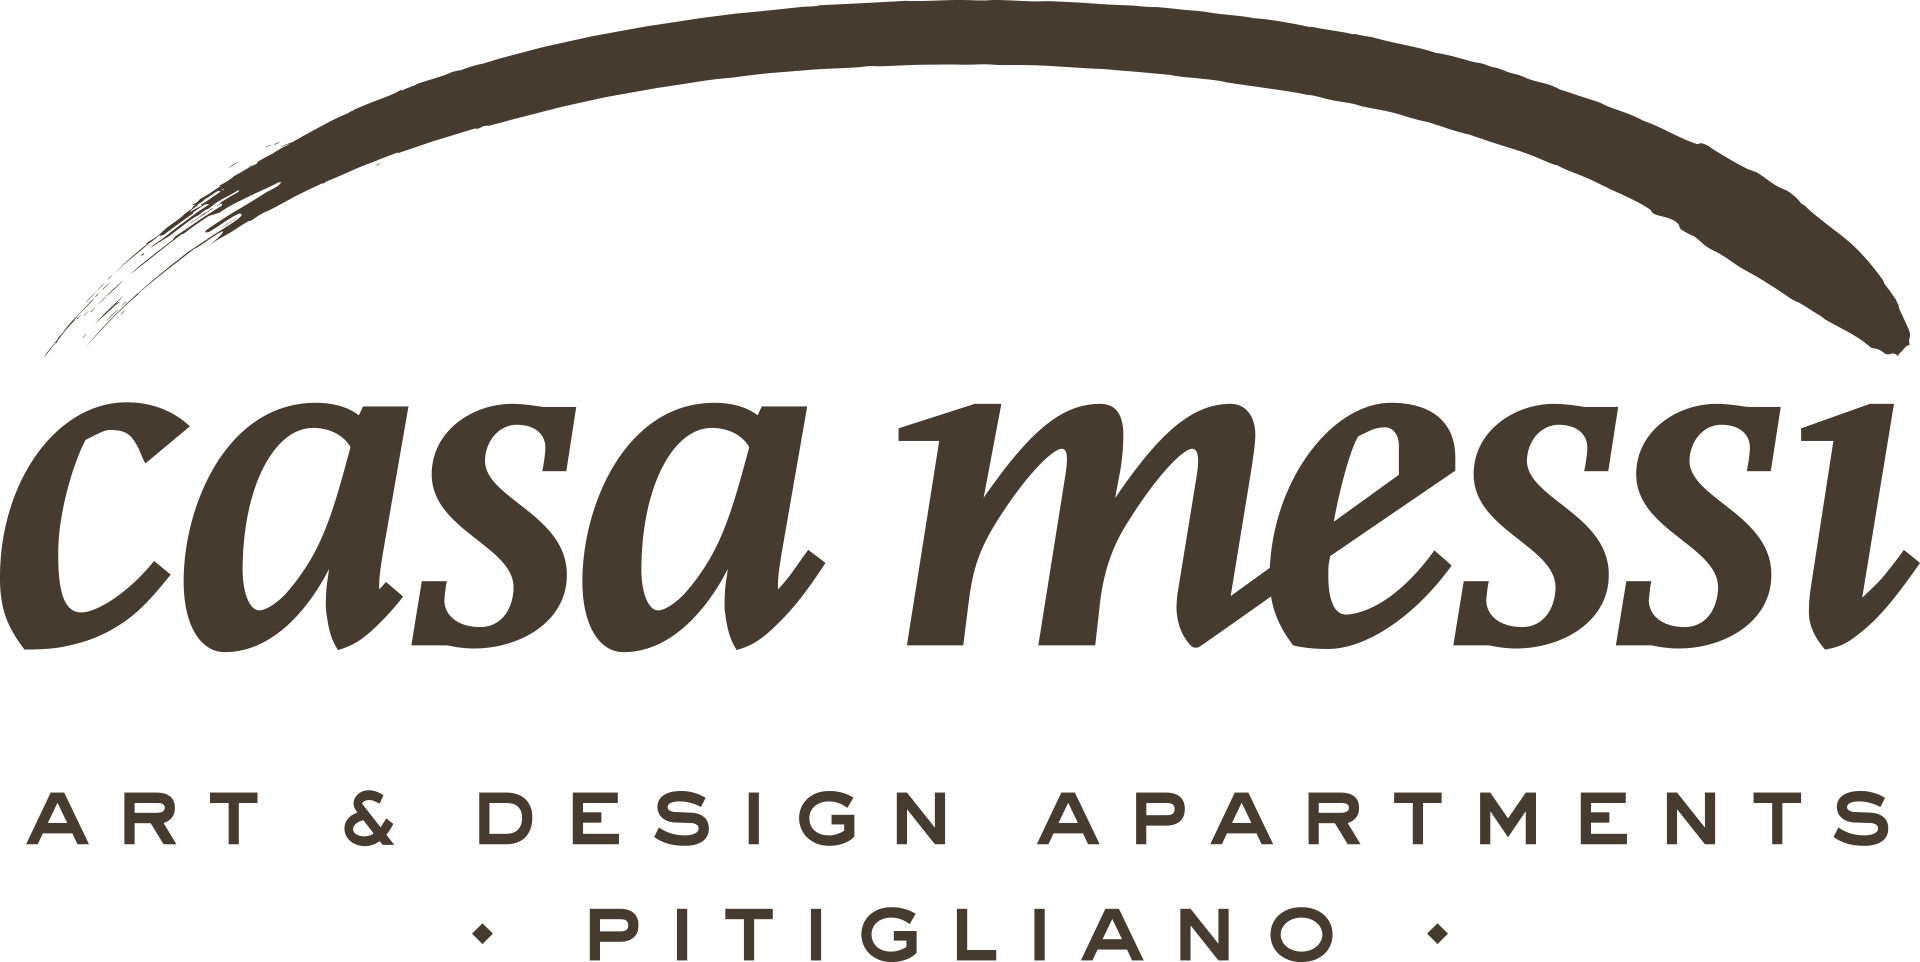 casa-messi-art-design-apartments-pitigliano